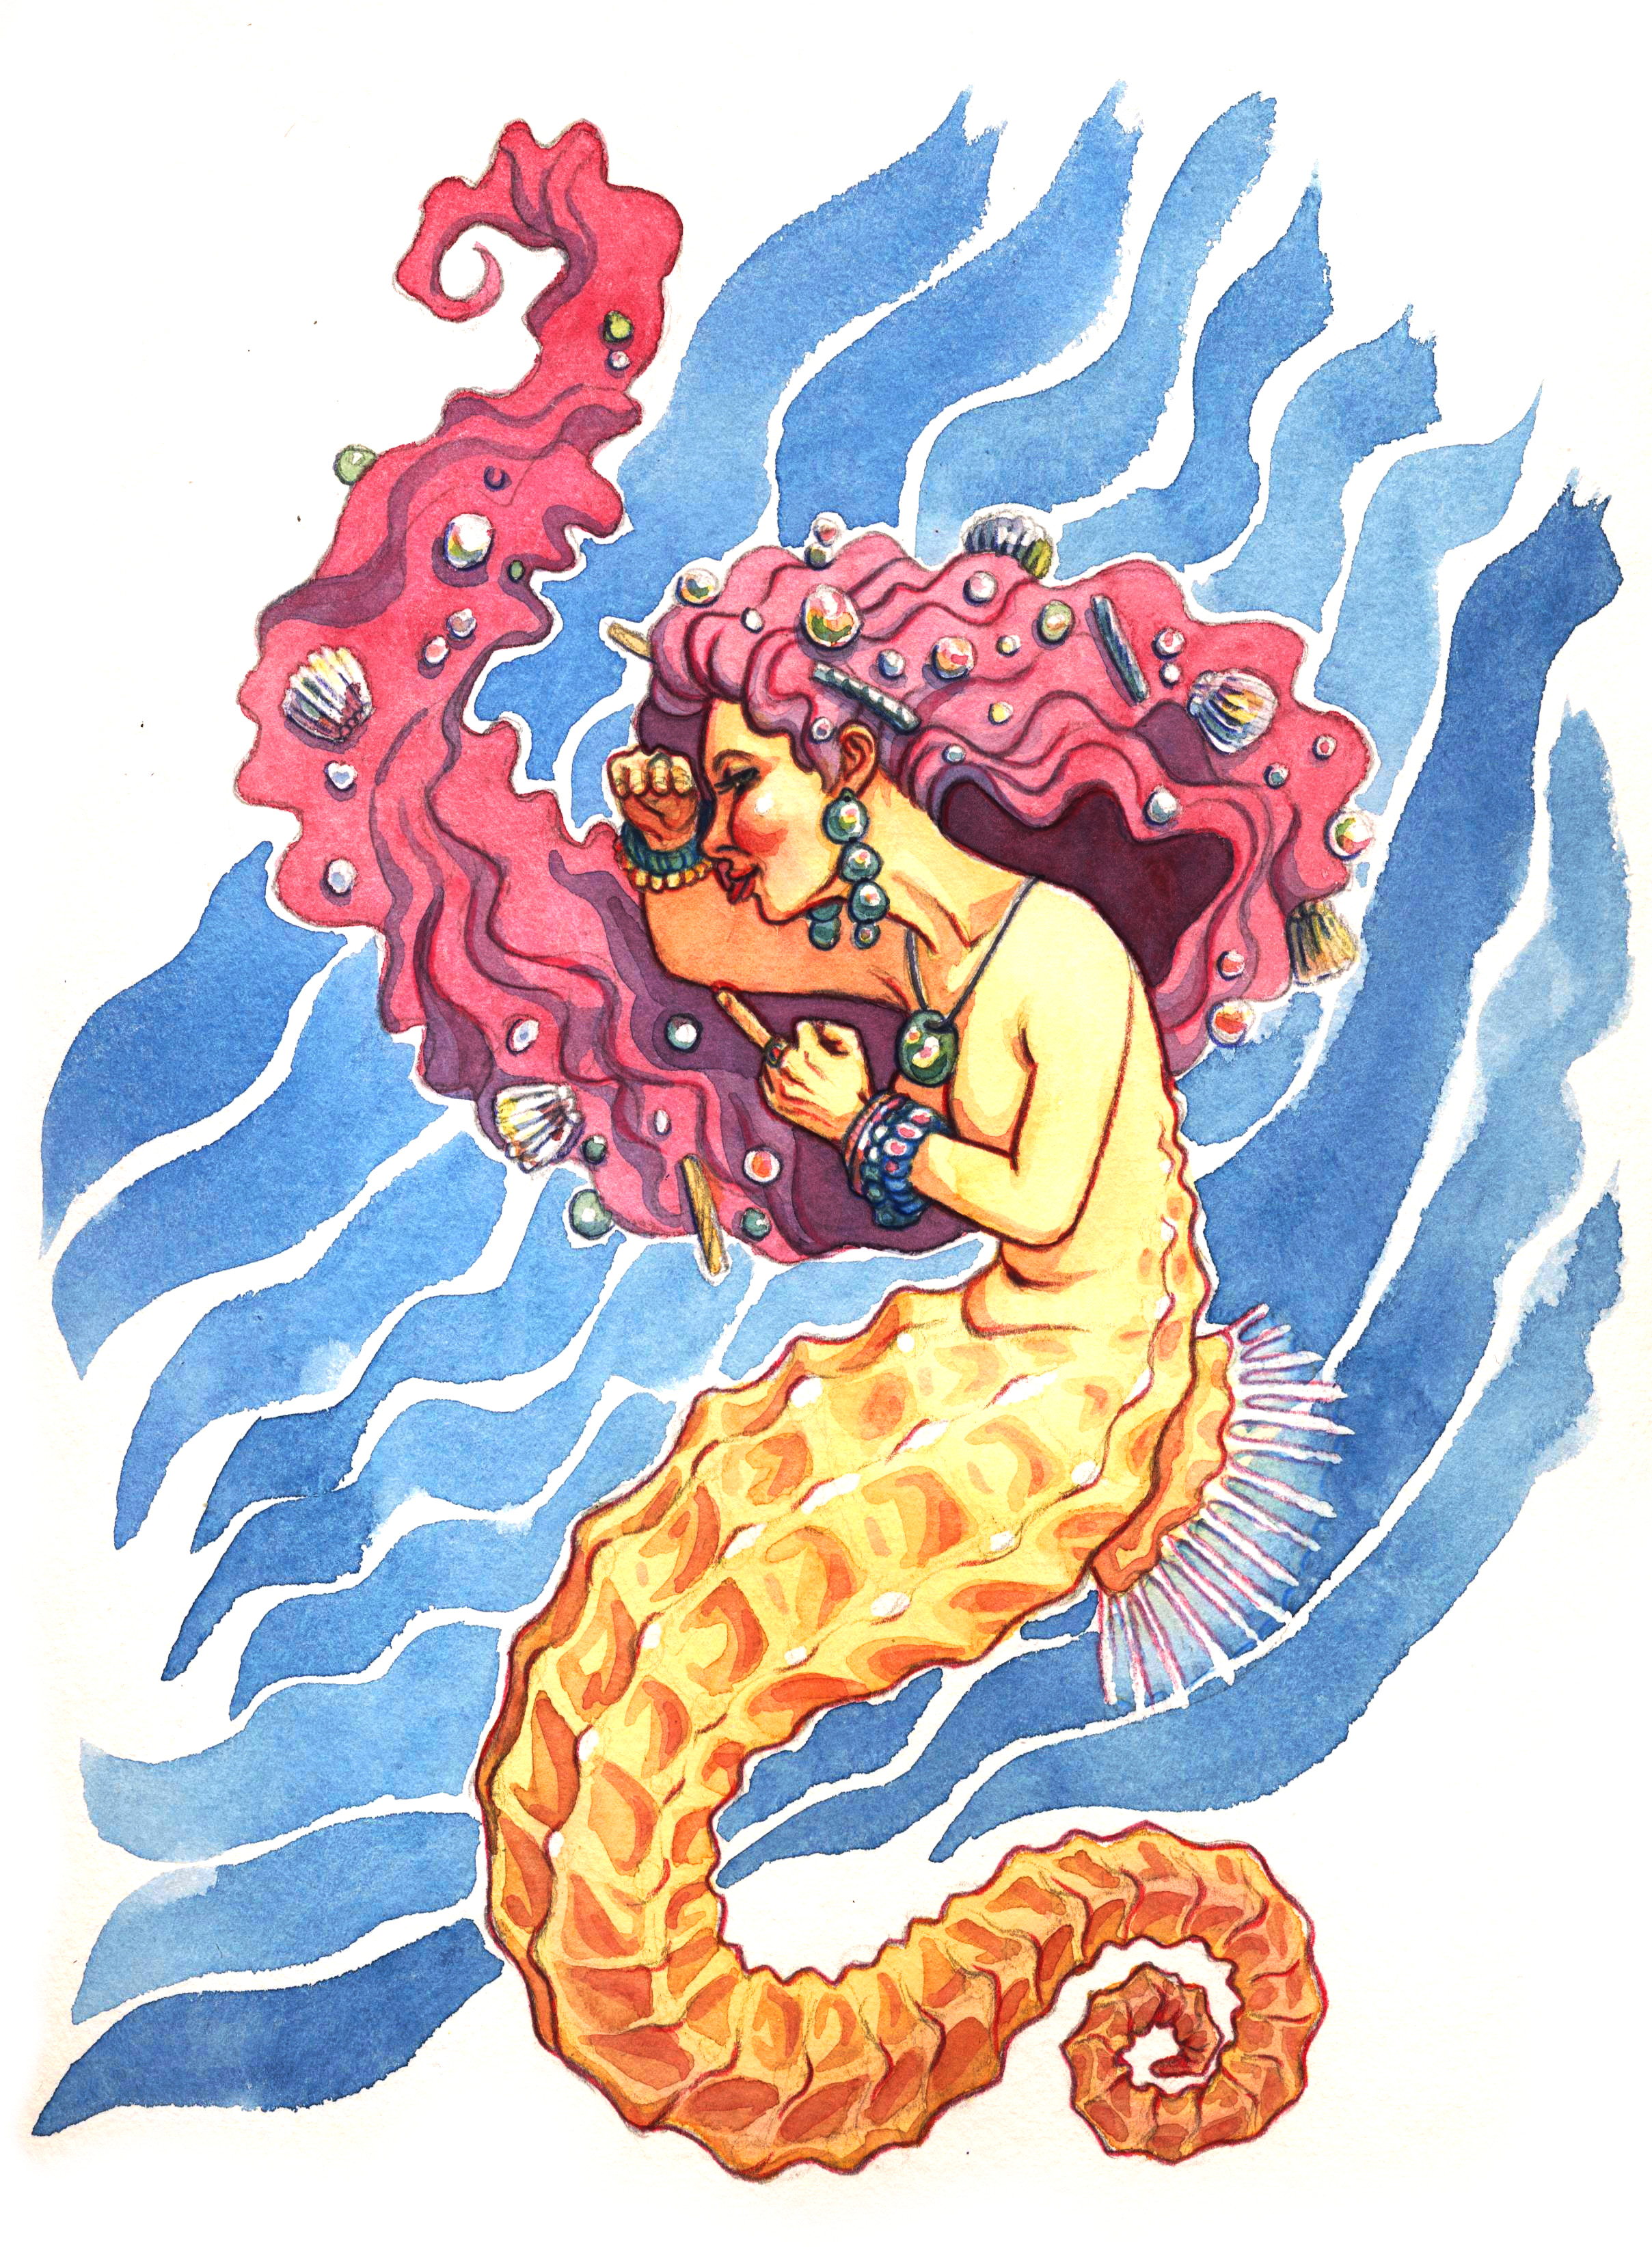 Rude Seahorse Mermaid Print Sold By Mkingamess On Storenvy